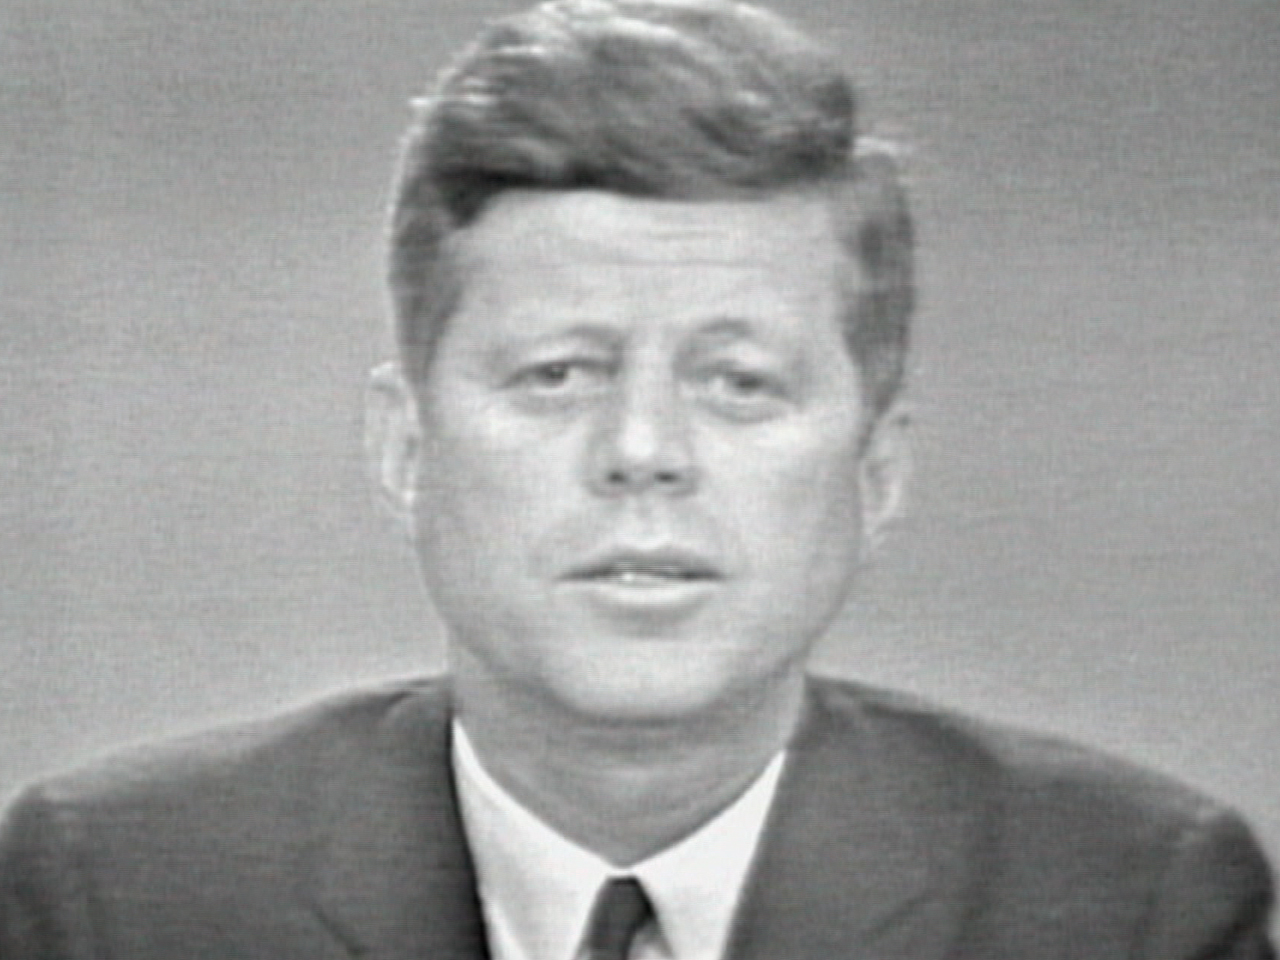 From the Archives: JFK address on civil rights - Video on NBCNews.com